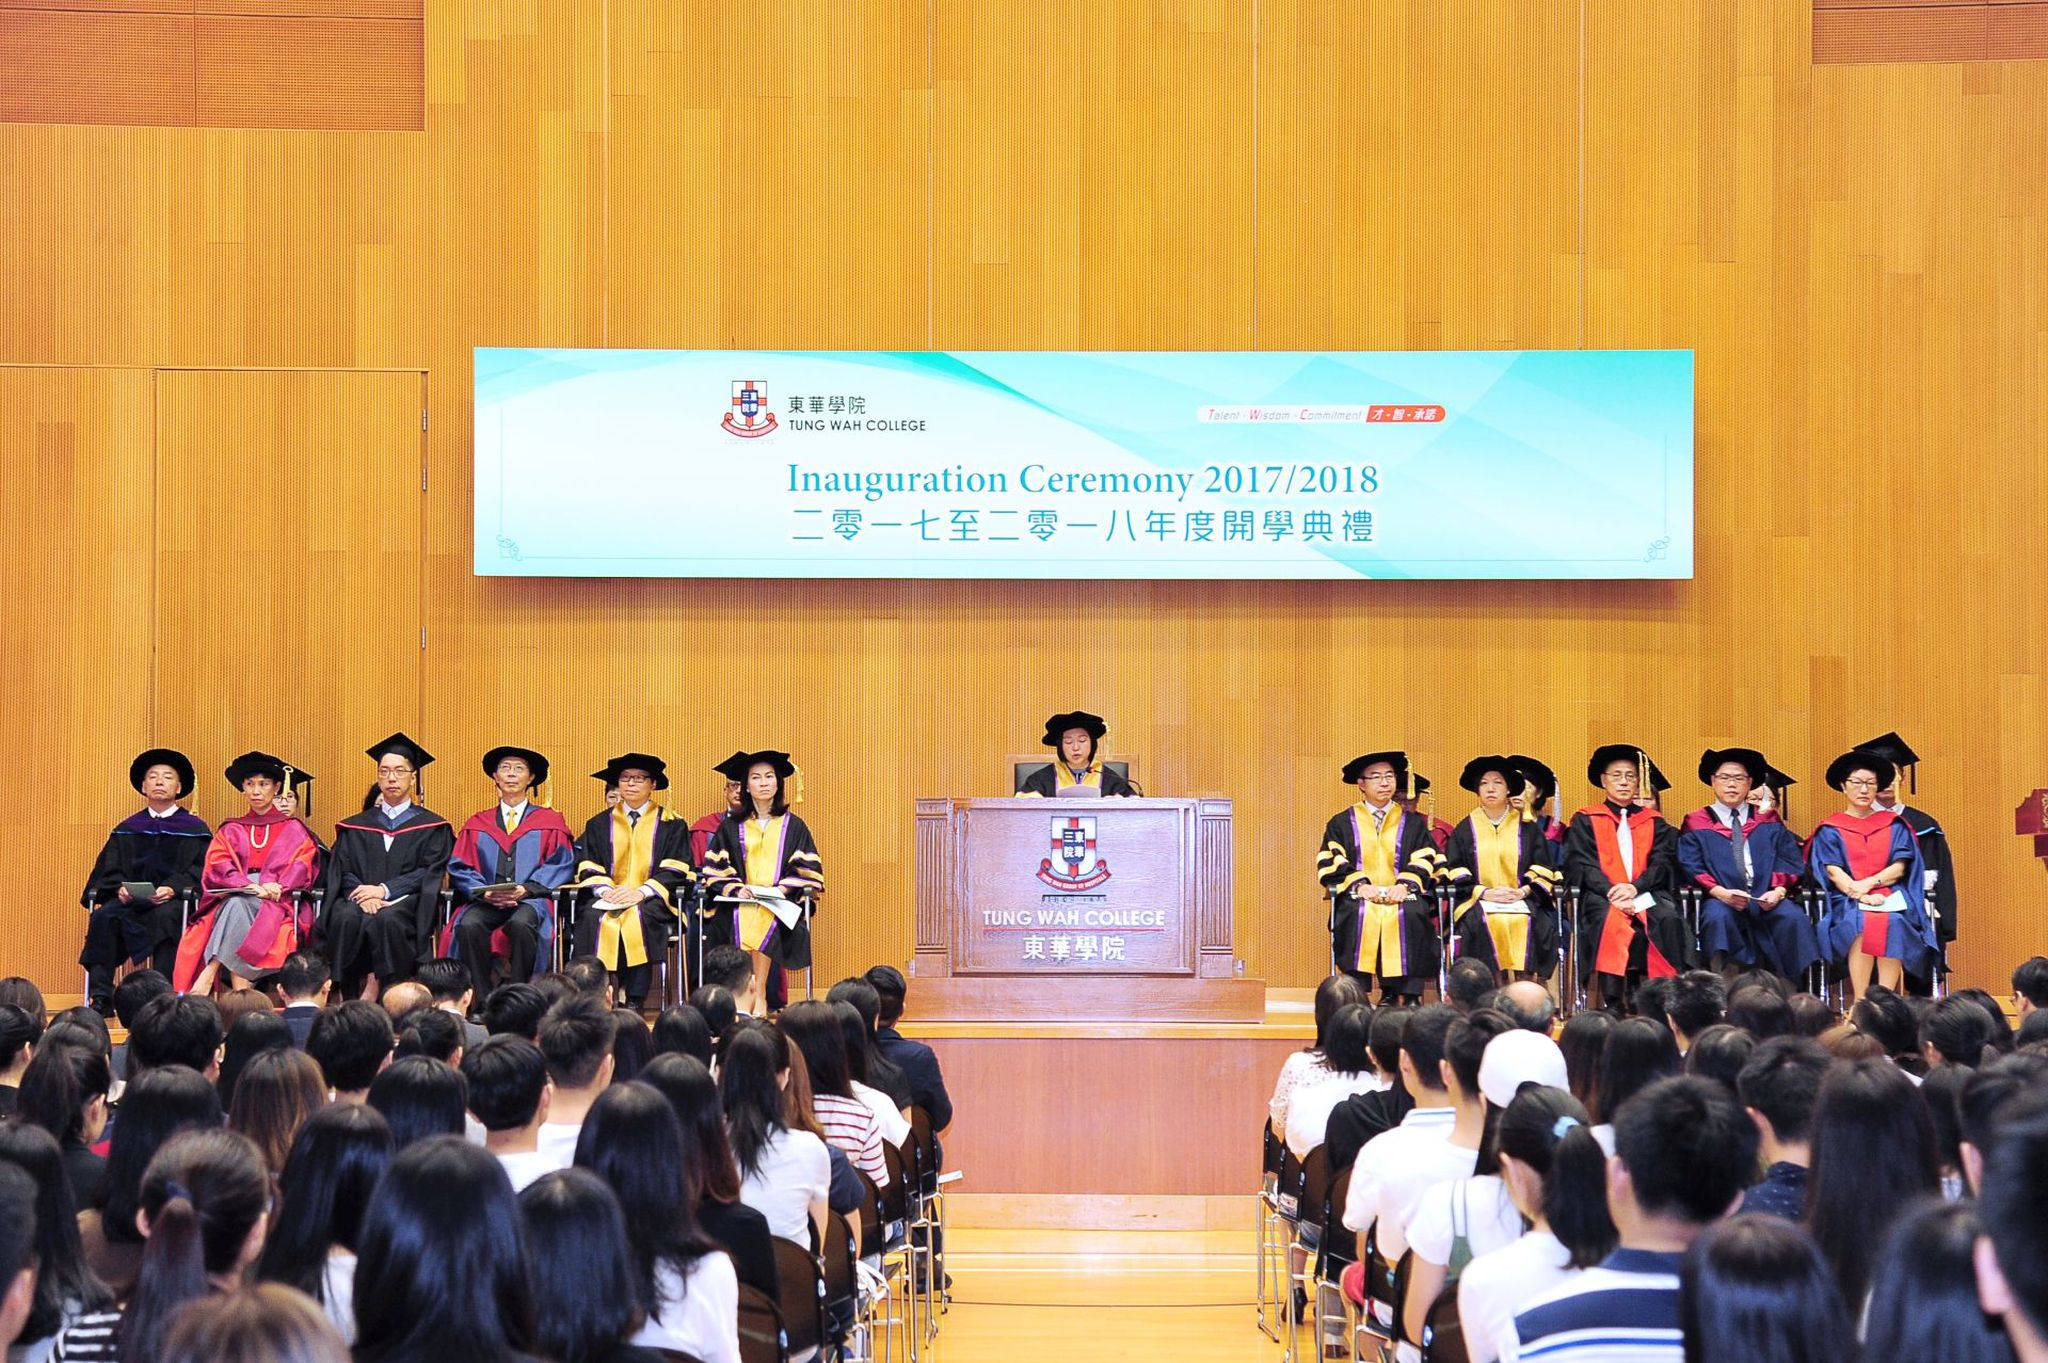 Tung Wah College Inauguration Ceremony 2017/2018